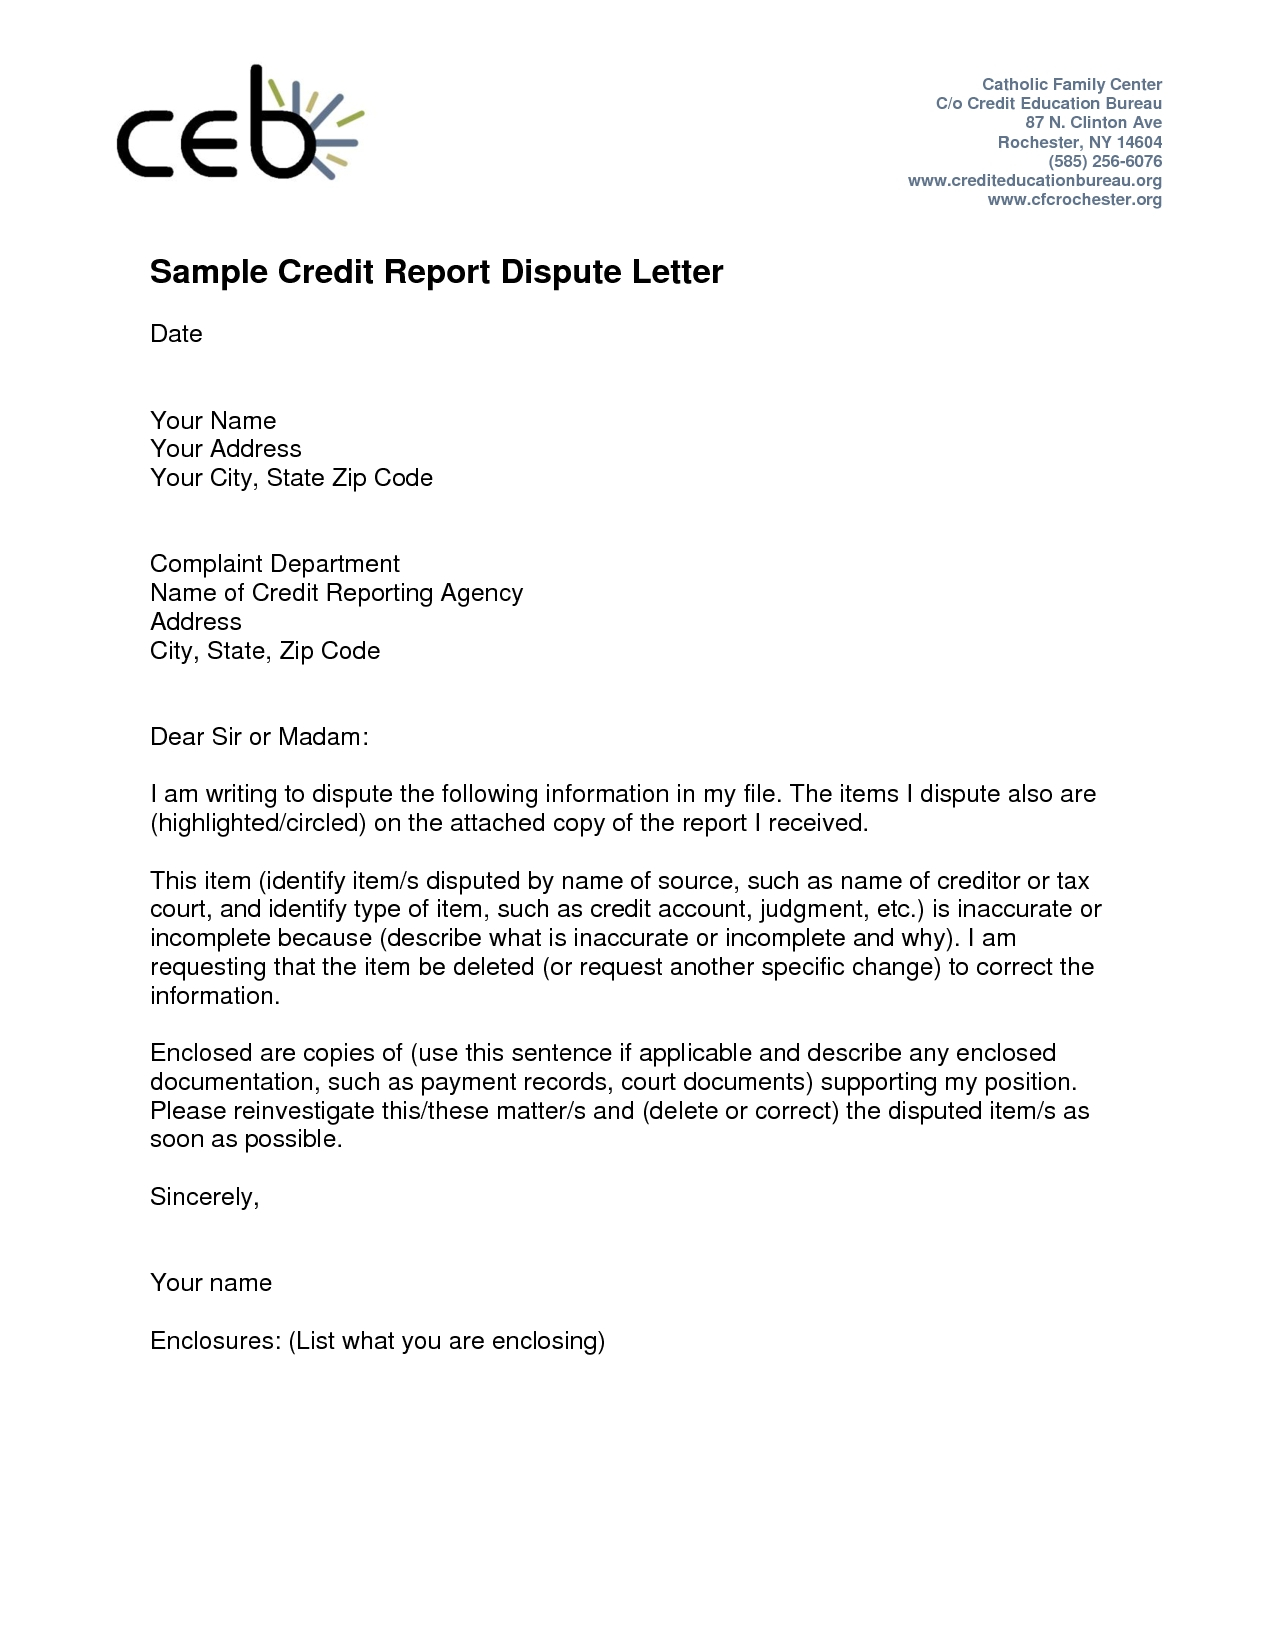 collection dispute letter template example-credit dispute letter templates 11-p